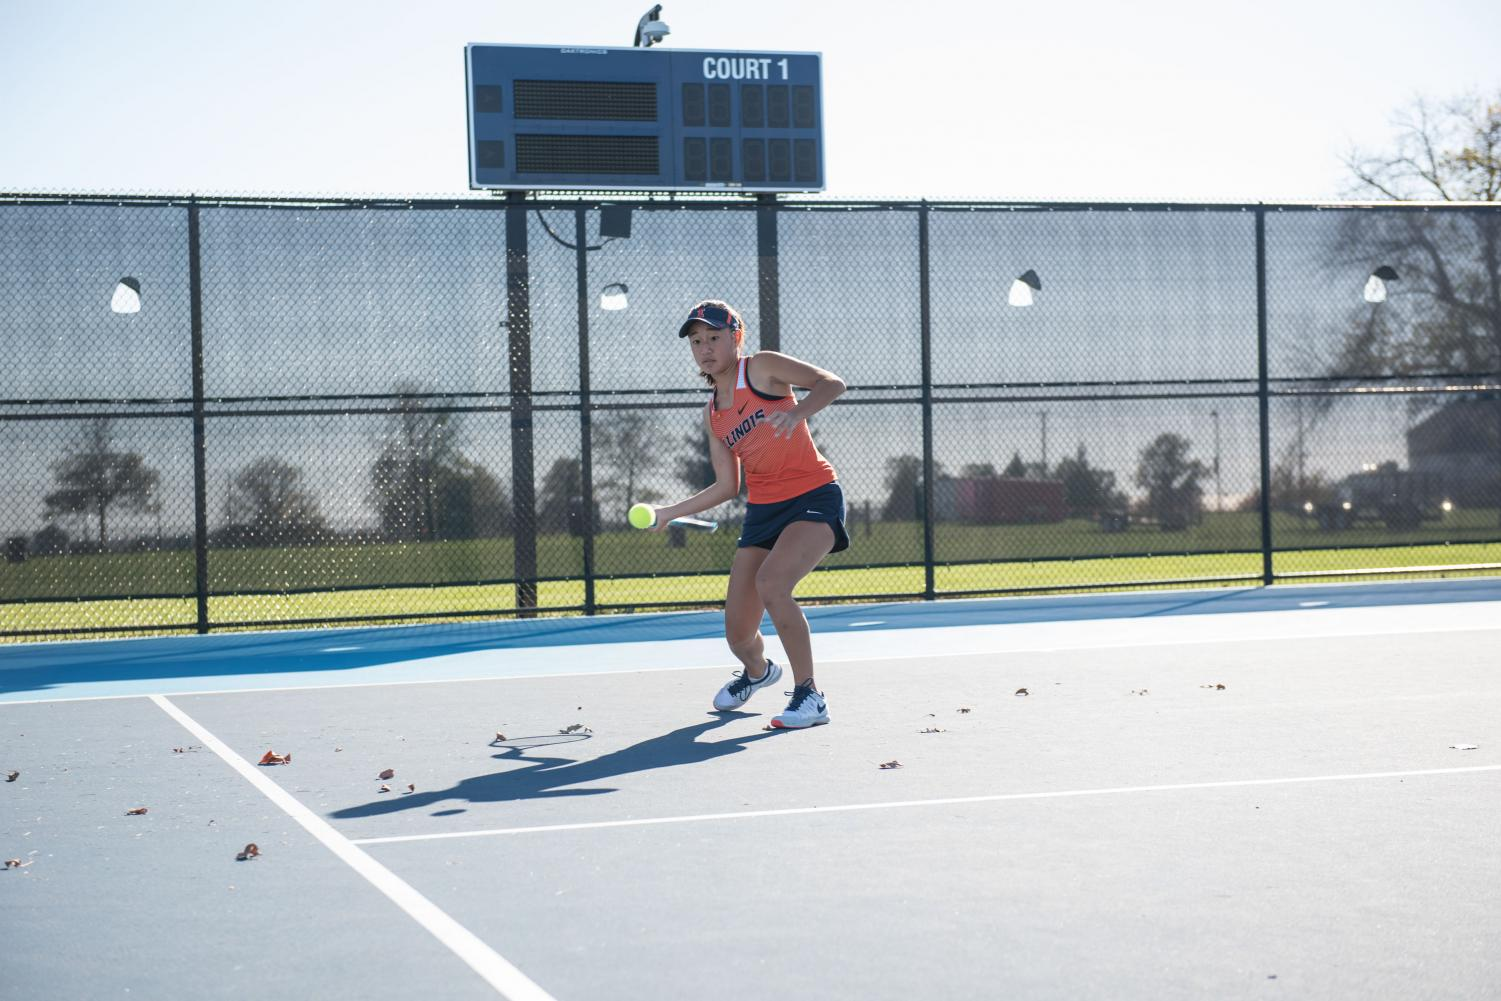 Illinois women's player Emilee Duong hits a forehand at Atkins Tennis Center. Duong won the ASU Invite last weekend. The team is proud of how it ended its last tournament of the season.